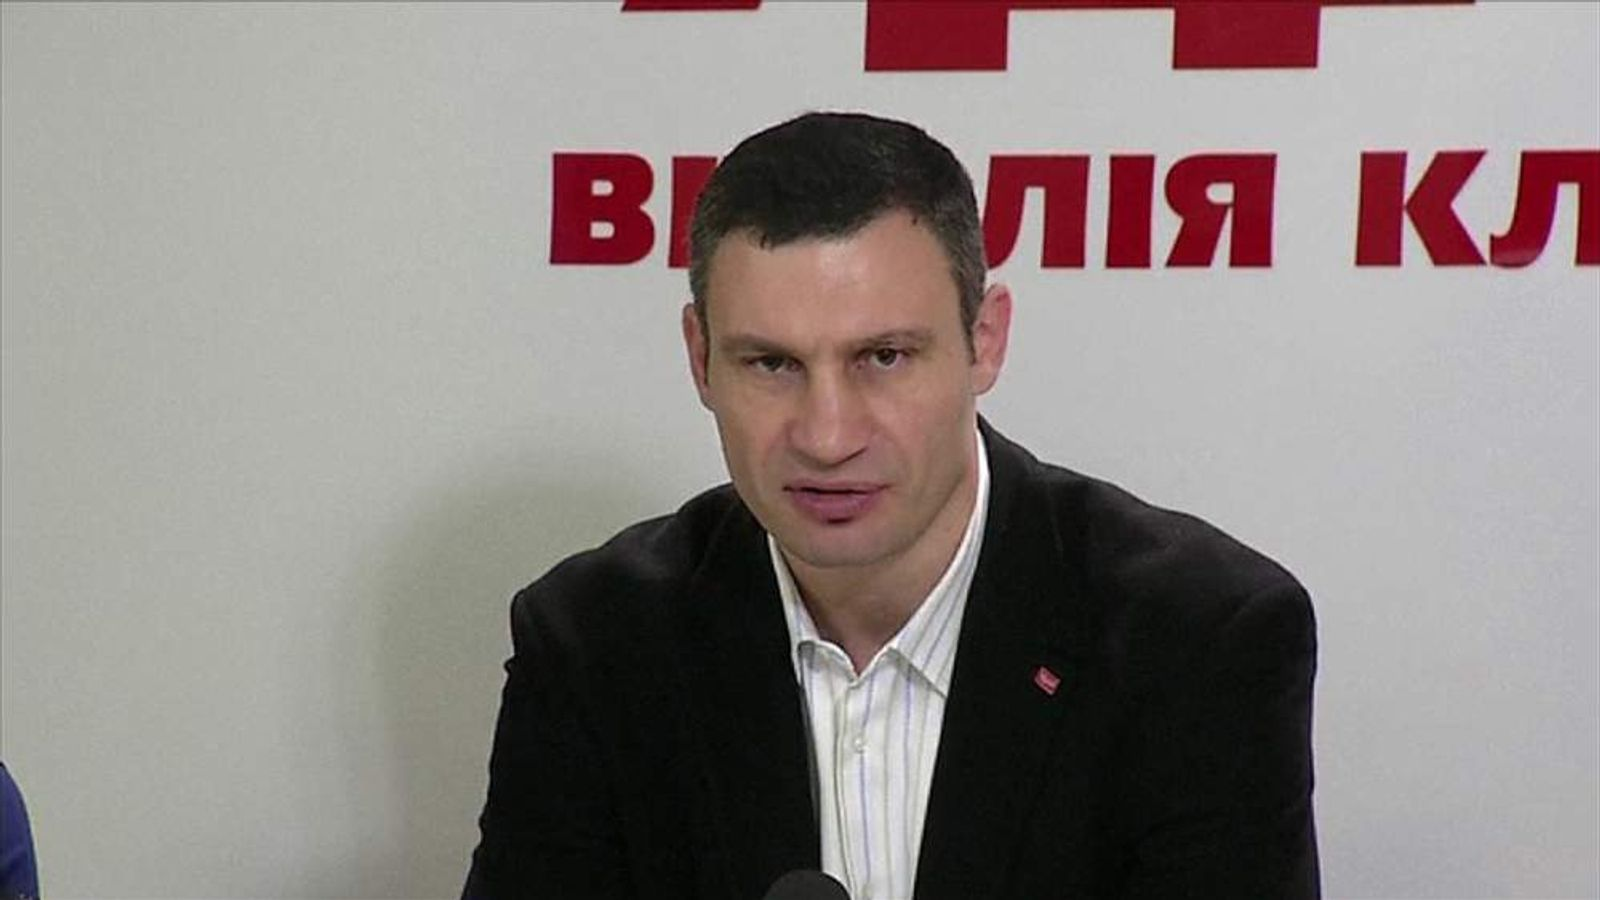 Opposition politician Vitali Klitschko